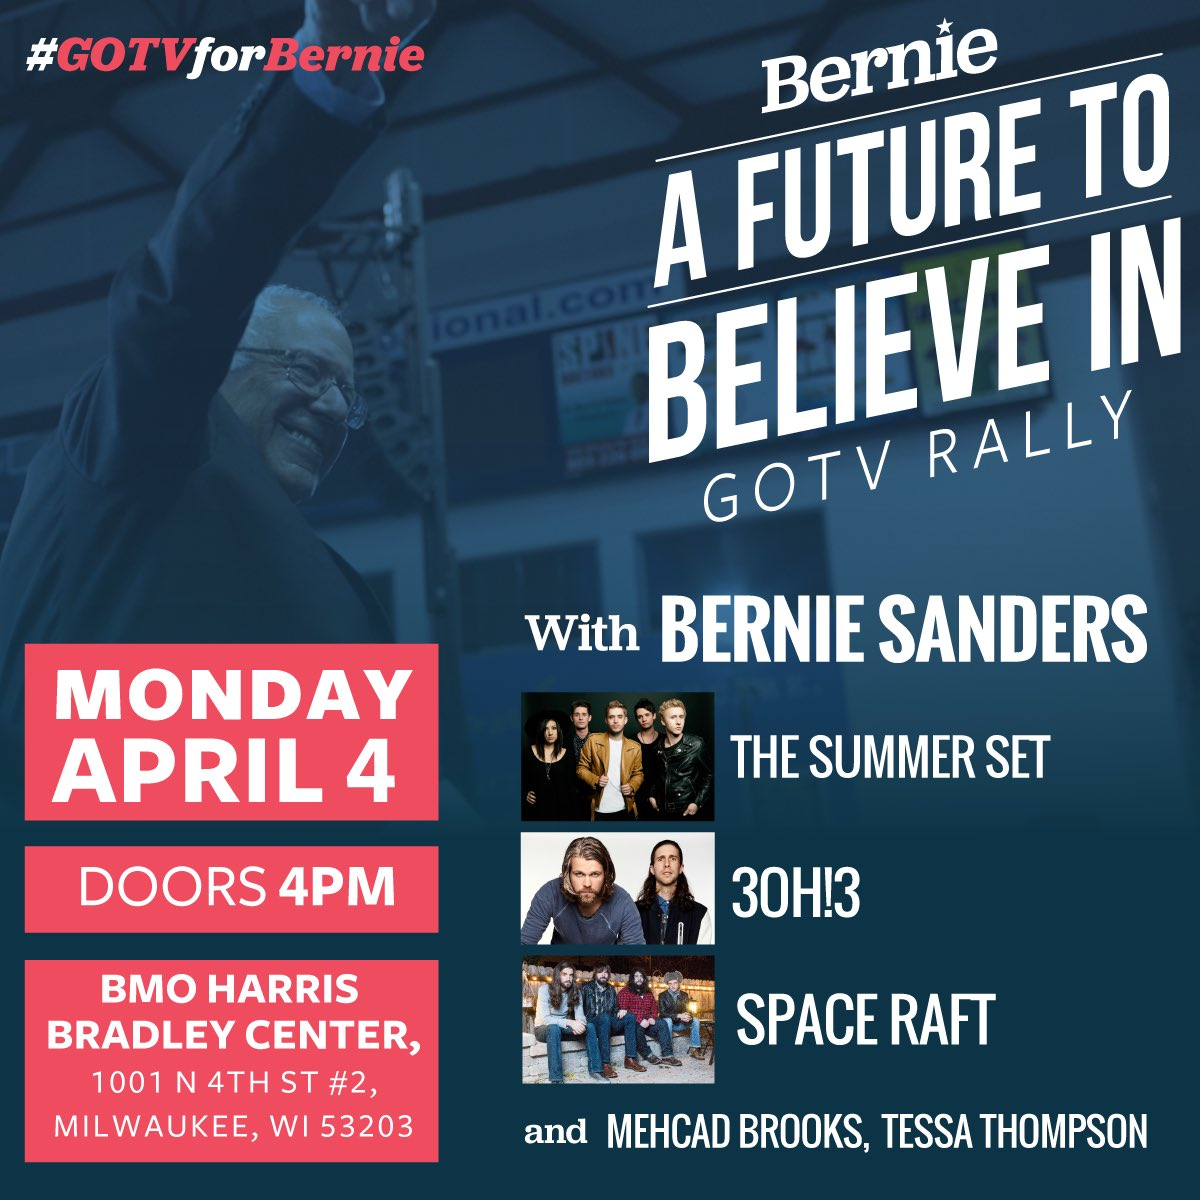 We're honored and excited to be playing for @BernieSanders in Milwaukee on Monday! #FeelTheBern https://t.co/W6HHGSdEST